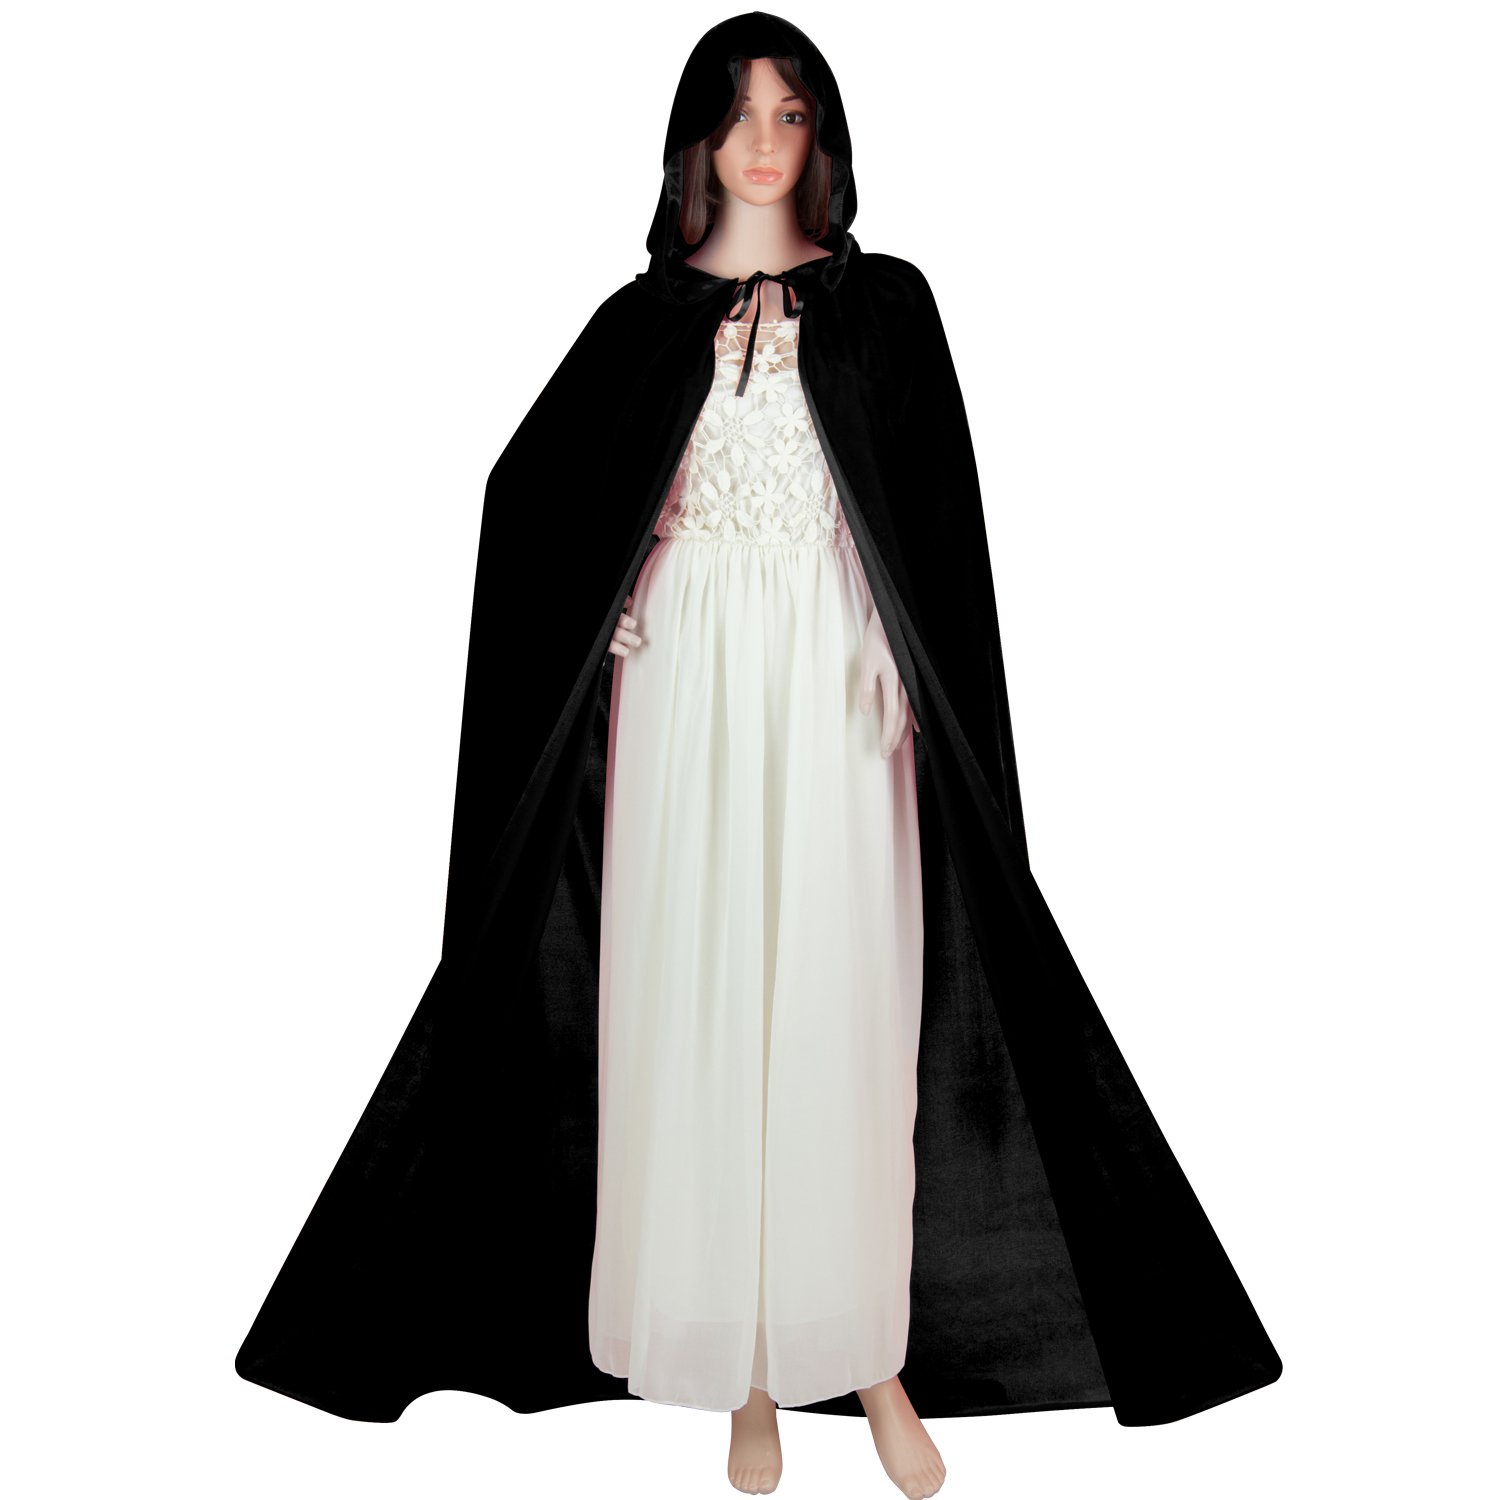 Victorian Wraps, Capes, Shawl, Capelets Hooded Cape Acecharming Medieval Style Floor Length Adults Velvet Cosplay Cloak with Hood for Devil Witch Wizard Magician $20.99 AT vintagedancer.com